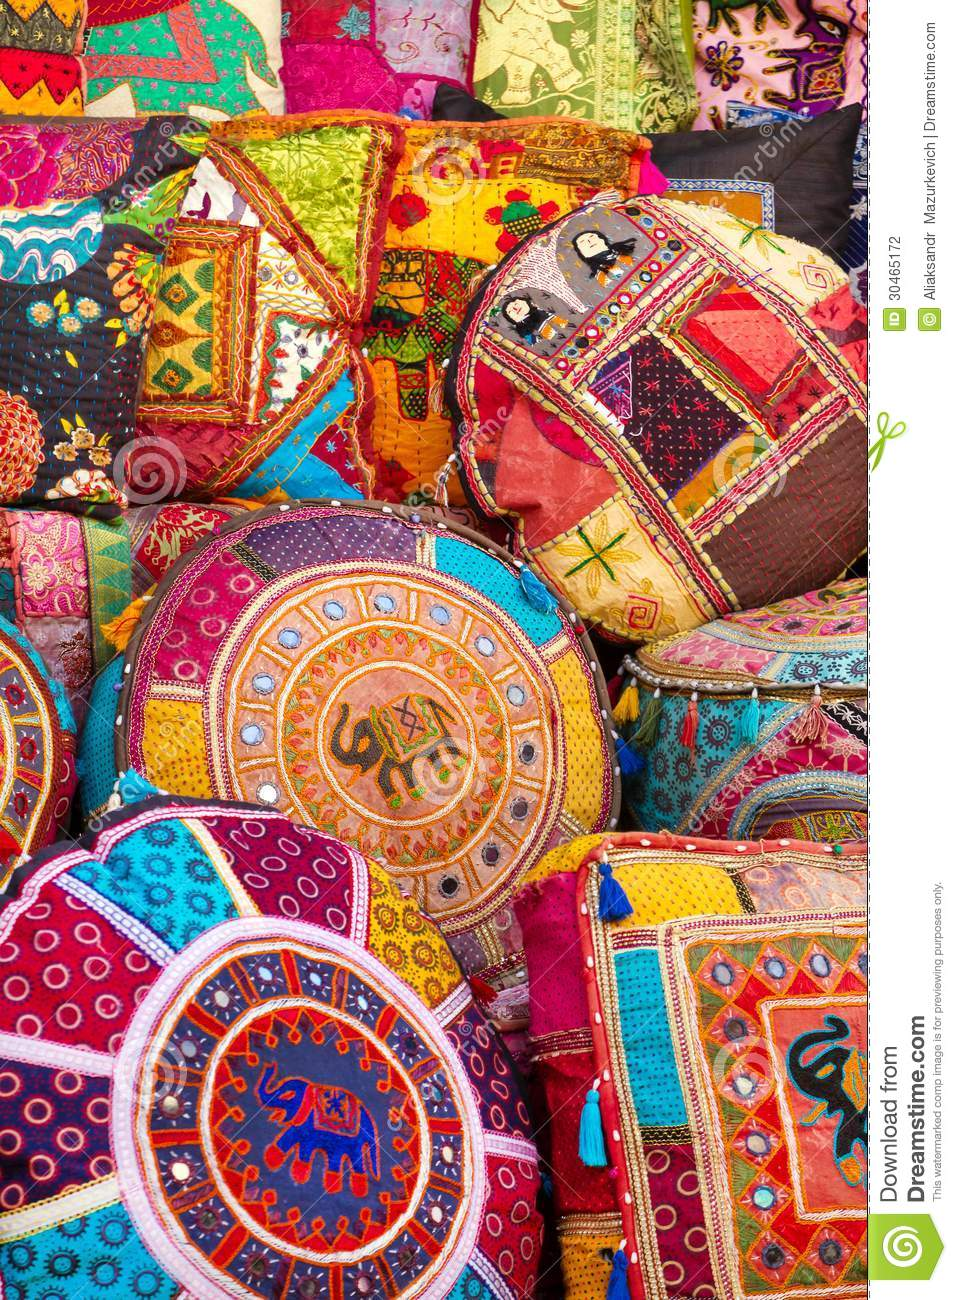 Colorful Indian pillows stock photo. Image of ethnic ...